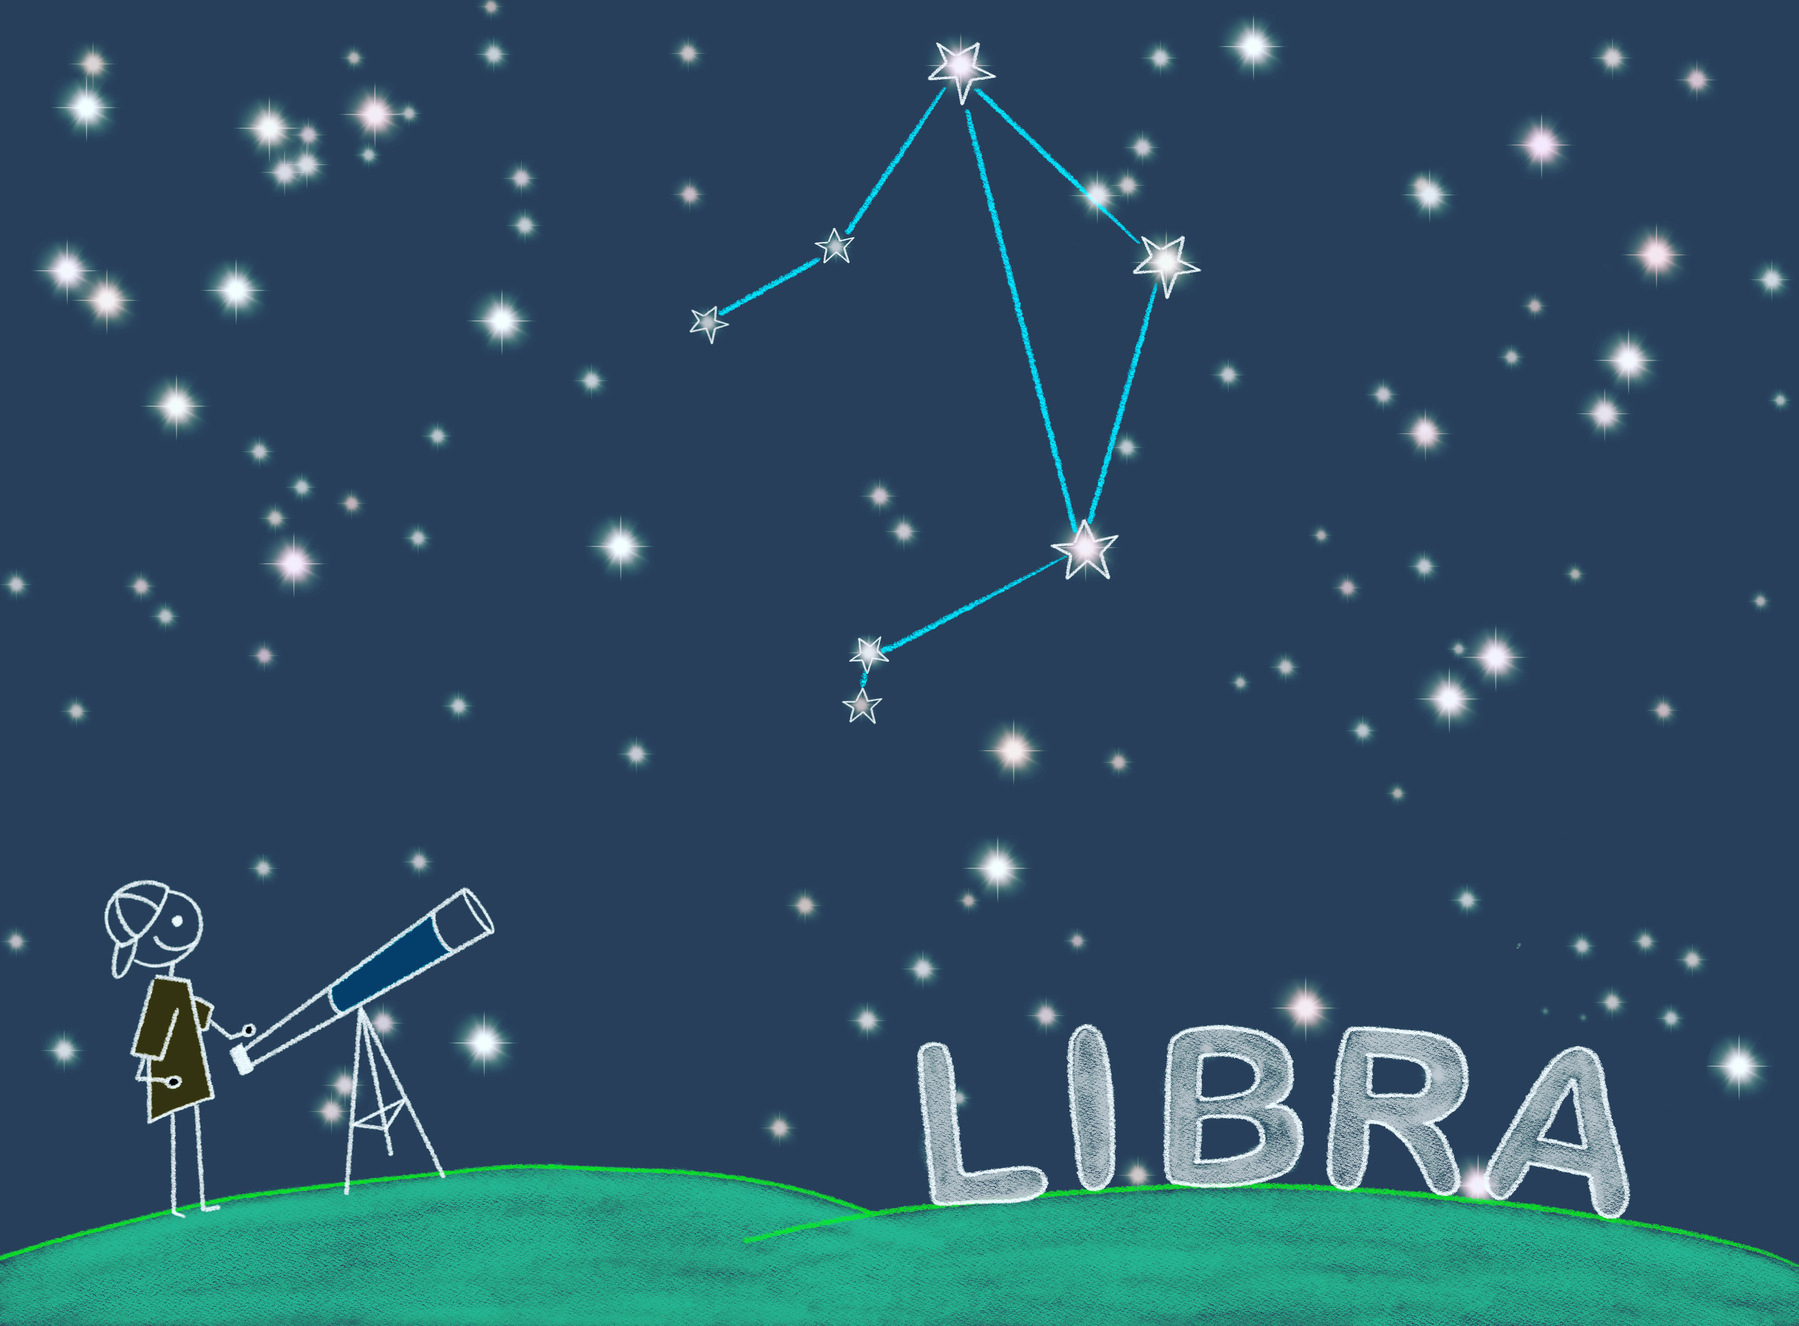 A stick figure is looking through a telescope at the Libra constellation